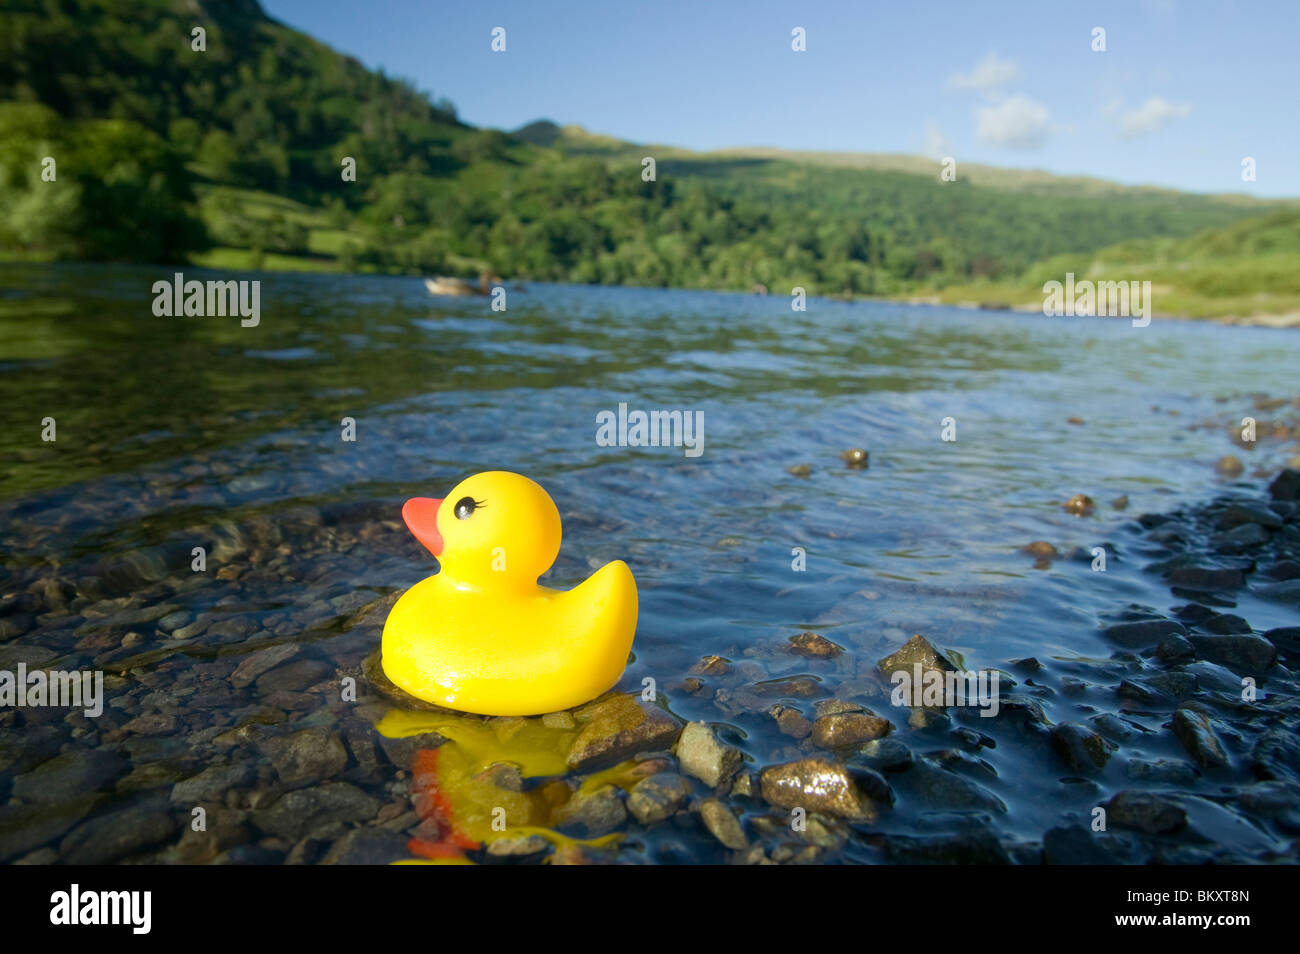 Lonely Rubber Duck Stock Photos Images Natural A On Rydal Water Lake District Uk Image